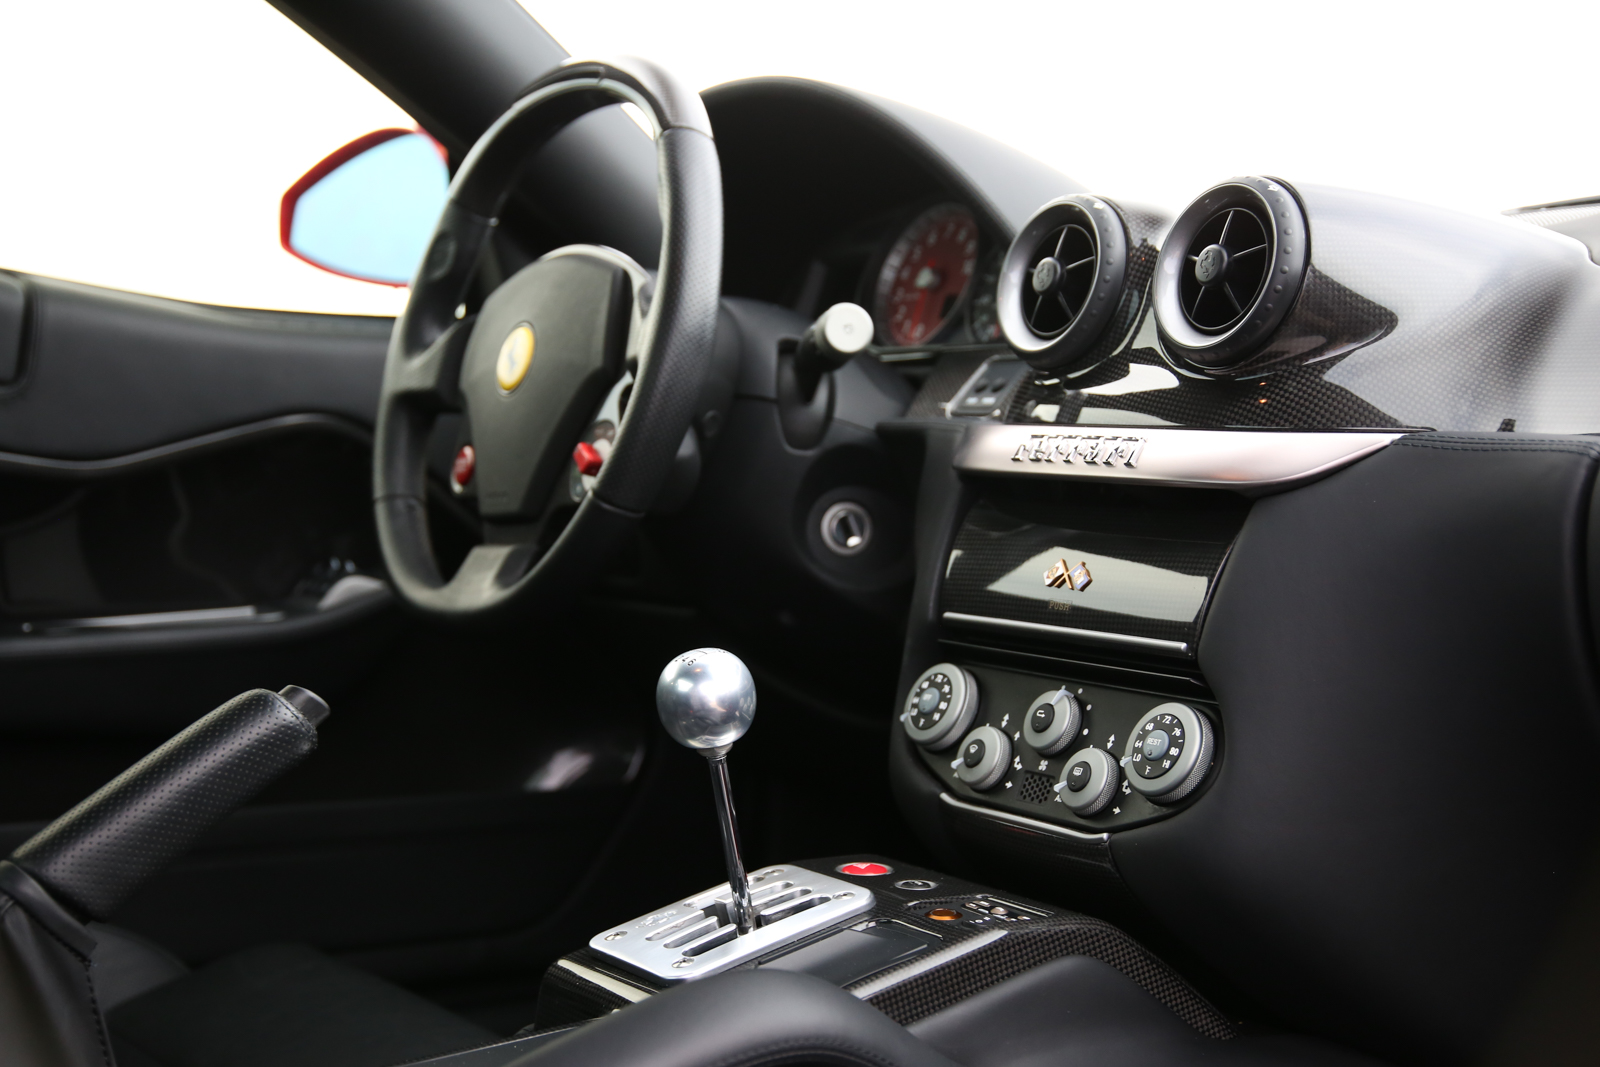 2007 Ferrari 599 GTB Fiorano HGTE 6-Speed for sale